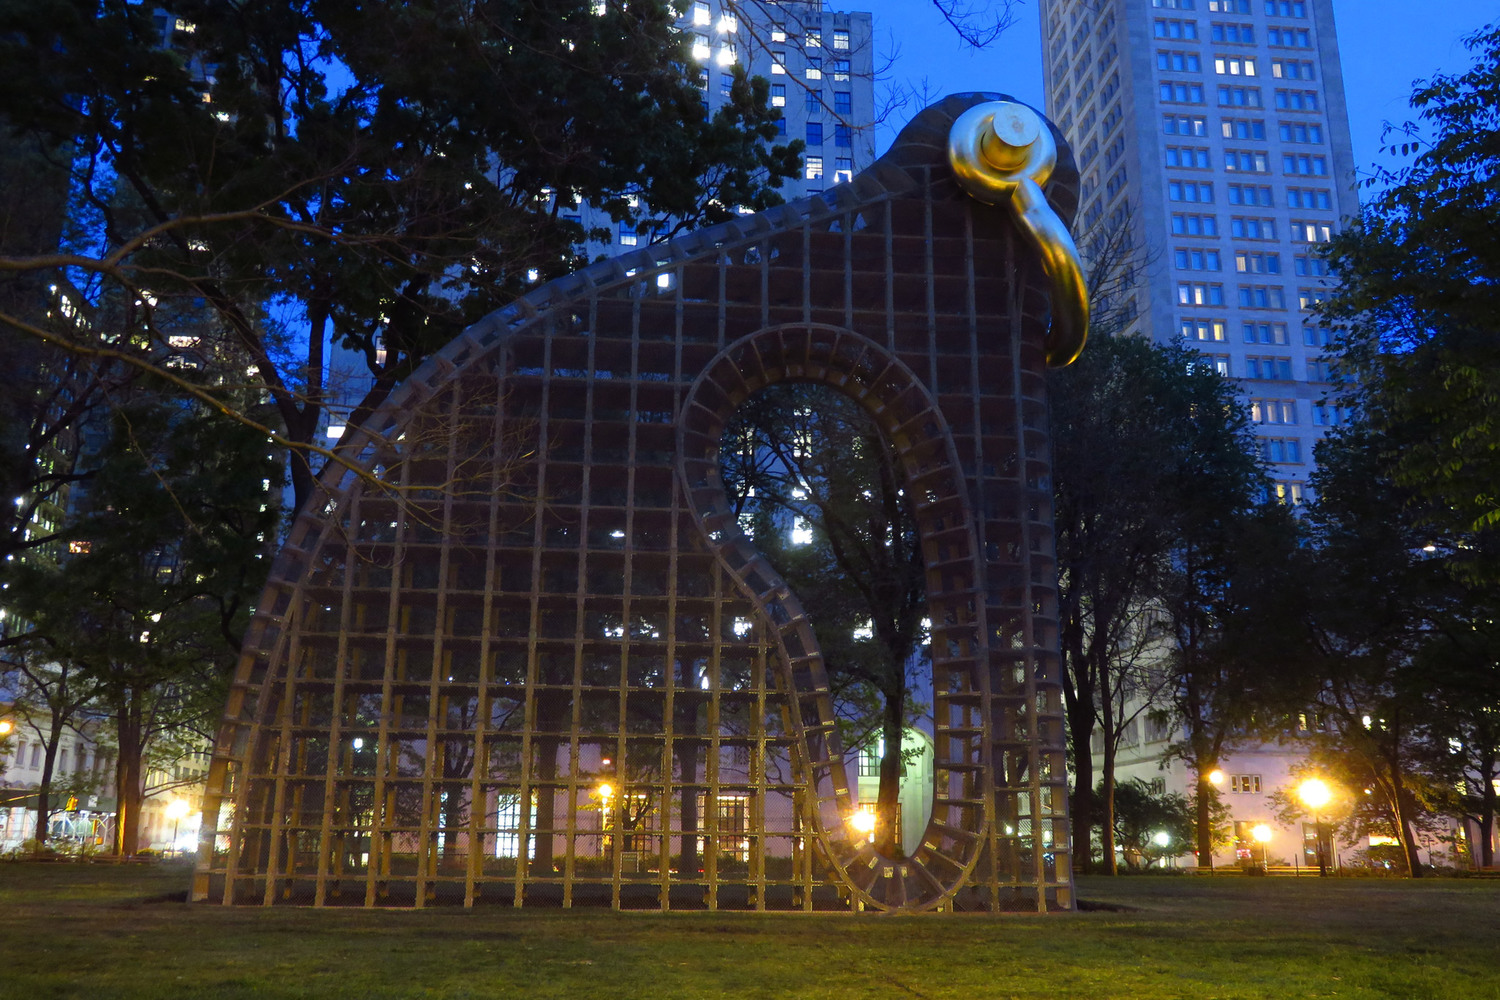 Big Bling | <i>Big Bling</i> by Martin Puryear will officially go on view in Madison Square Park next week, but I was there this evening.  &quot;At forty feet high, Big Bling will achieve colossal scale and elicit a range of readings, stimulating diverse and profound interpretations of its meaning.  The largest temporary outdoor sculpture Puryear has created, Big Bling is part animal form, part abstract sculpture, and part intellectual meditation. The artist's signature organic vocabulary appears in a graceful, sinewy outline and an amoeboid form in the work's center.&quot;